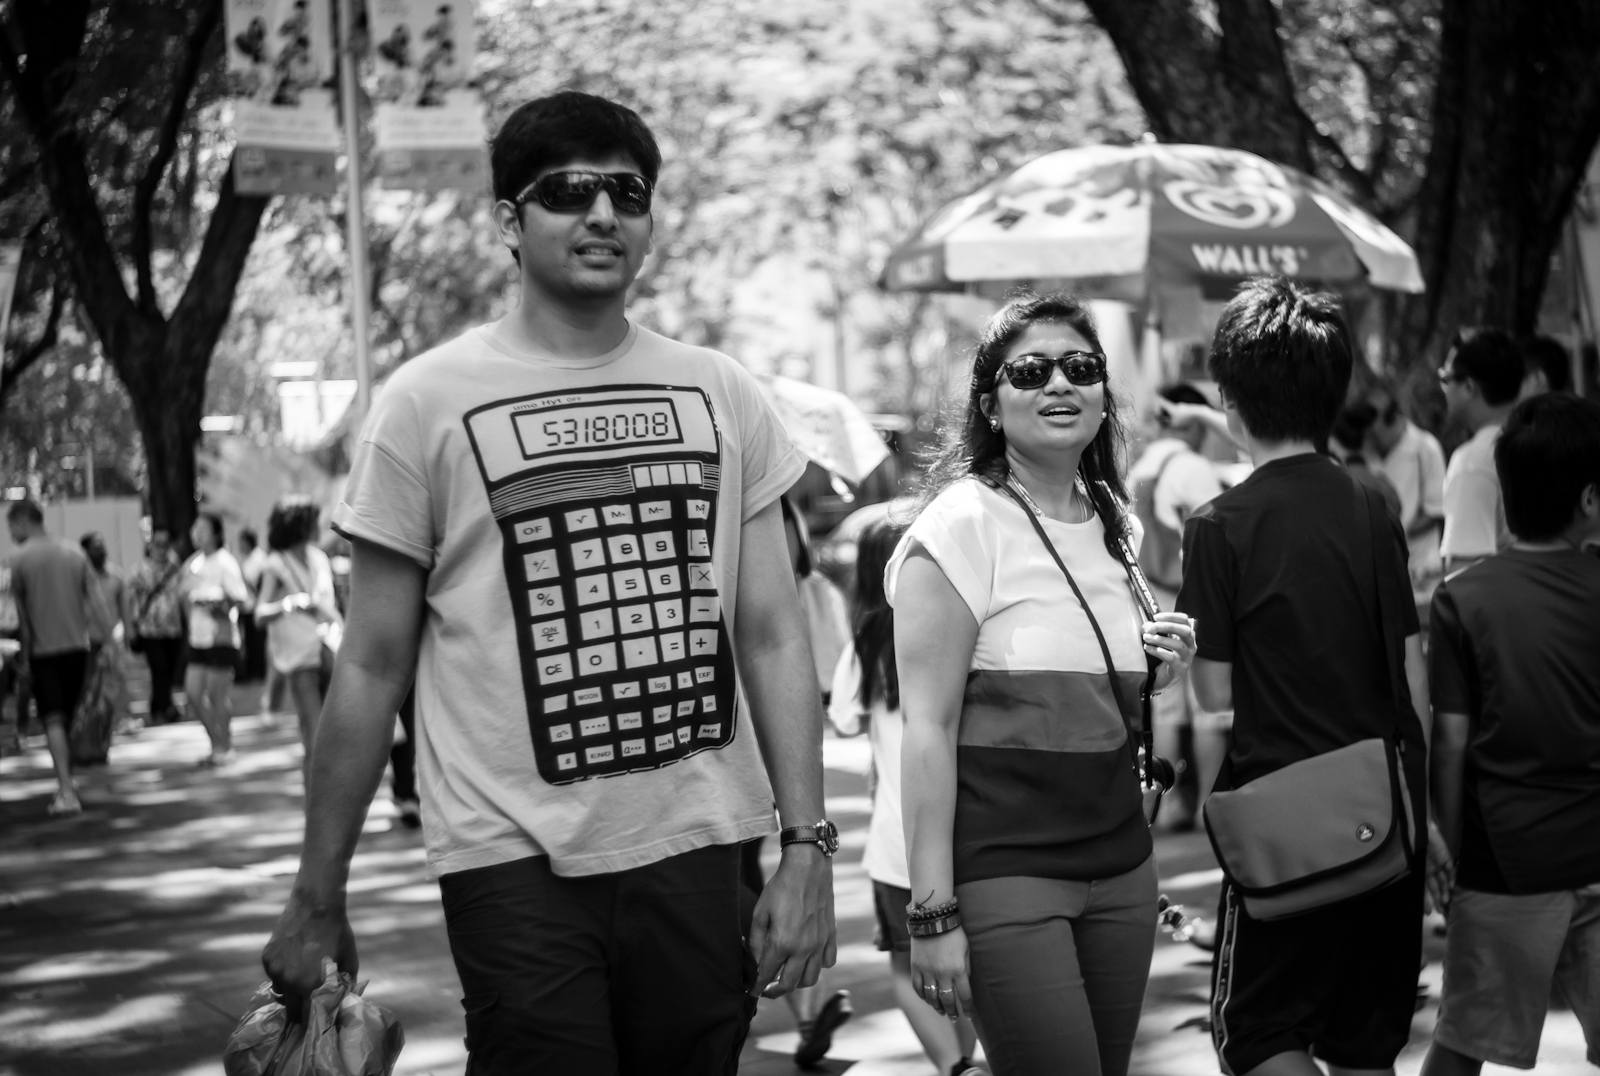 Street photography - man wearing a t-shirt with calculator print